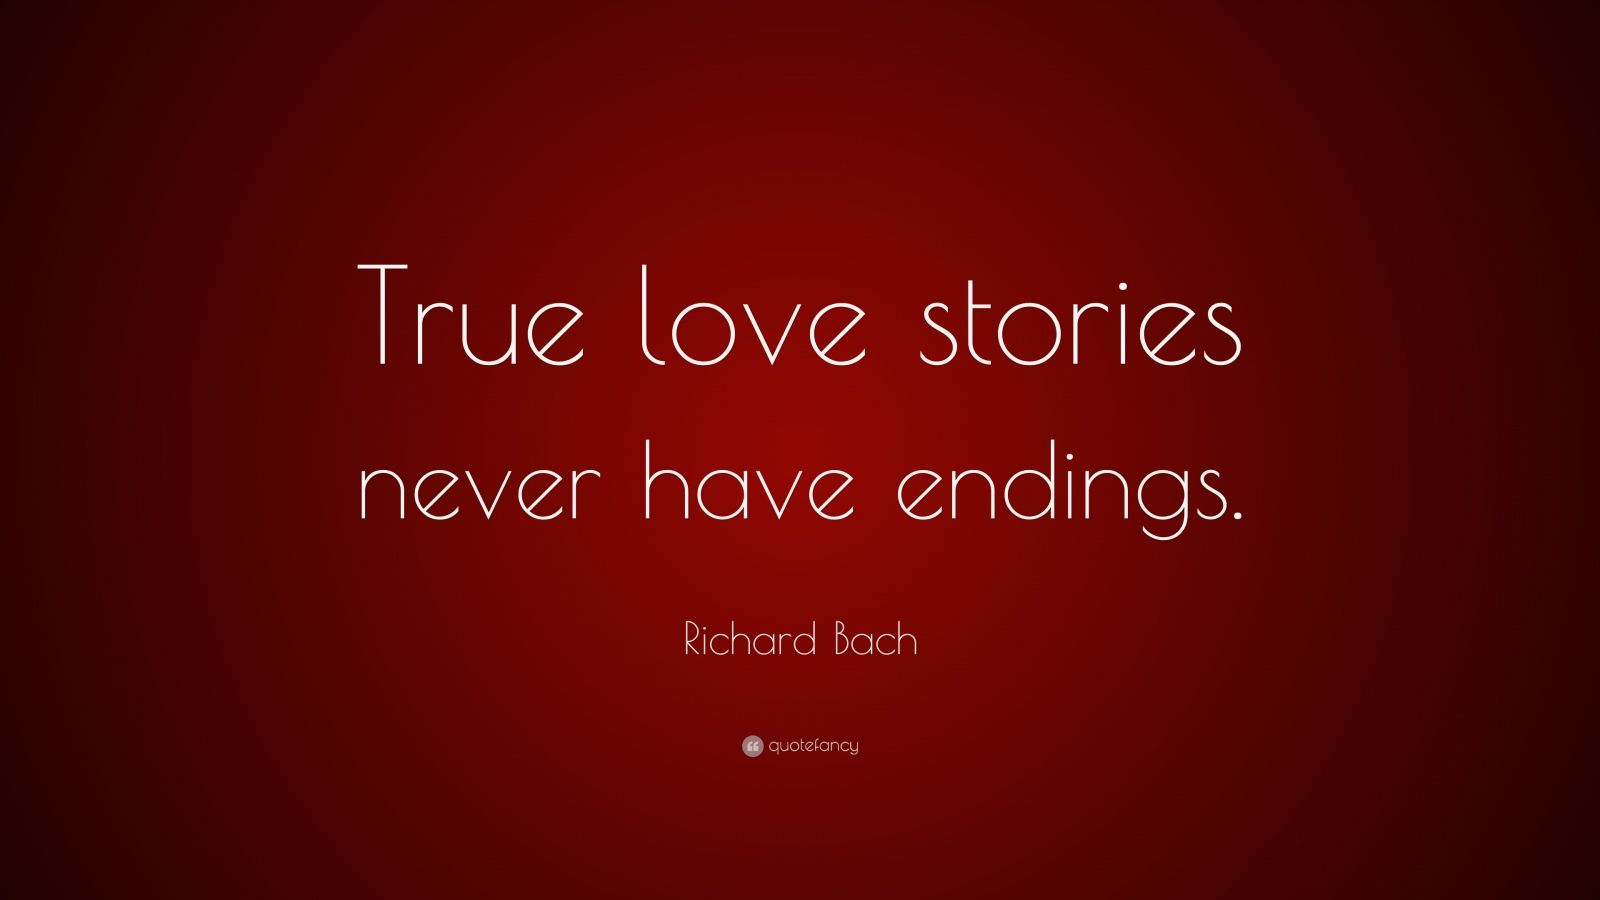 True Love Never End Wallpaper : Richard Bach Quote: ?True love stories never have endings.? (25 wallpapers) - Quotefancy